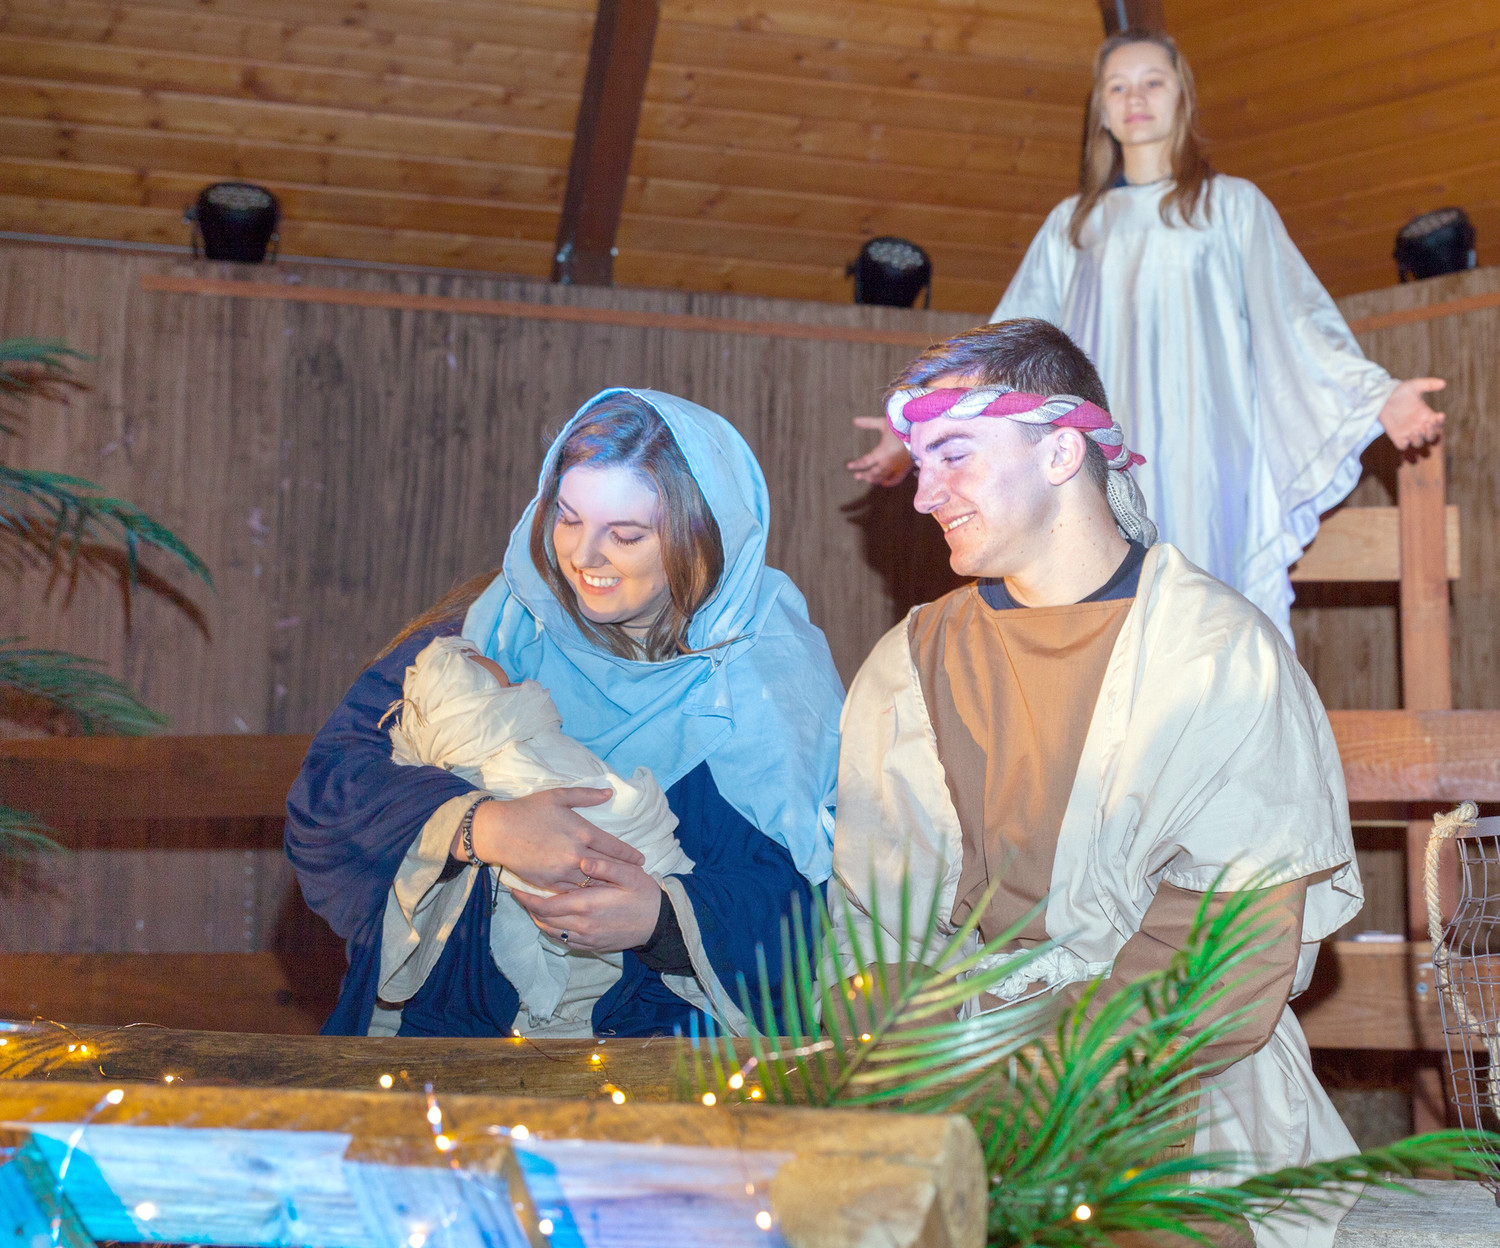 MARY AND JOSEPH, pictured above, hold the newly born baby Jesus in the stable as an angel appears behind them. The live nativity story was presented Thursday night at the Greenway Park near the Pavilion and will be repeated tonight and Sunday night. At left, three shepherds watch their flock at night during the live nativity story.